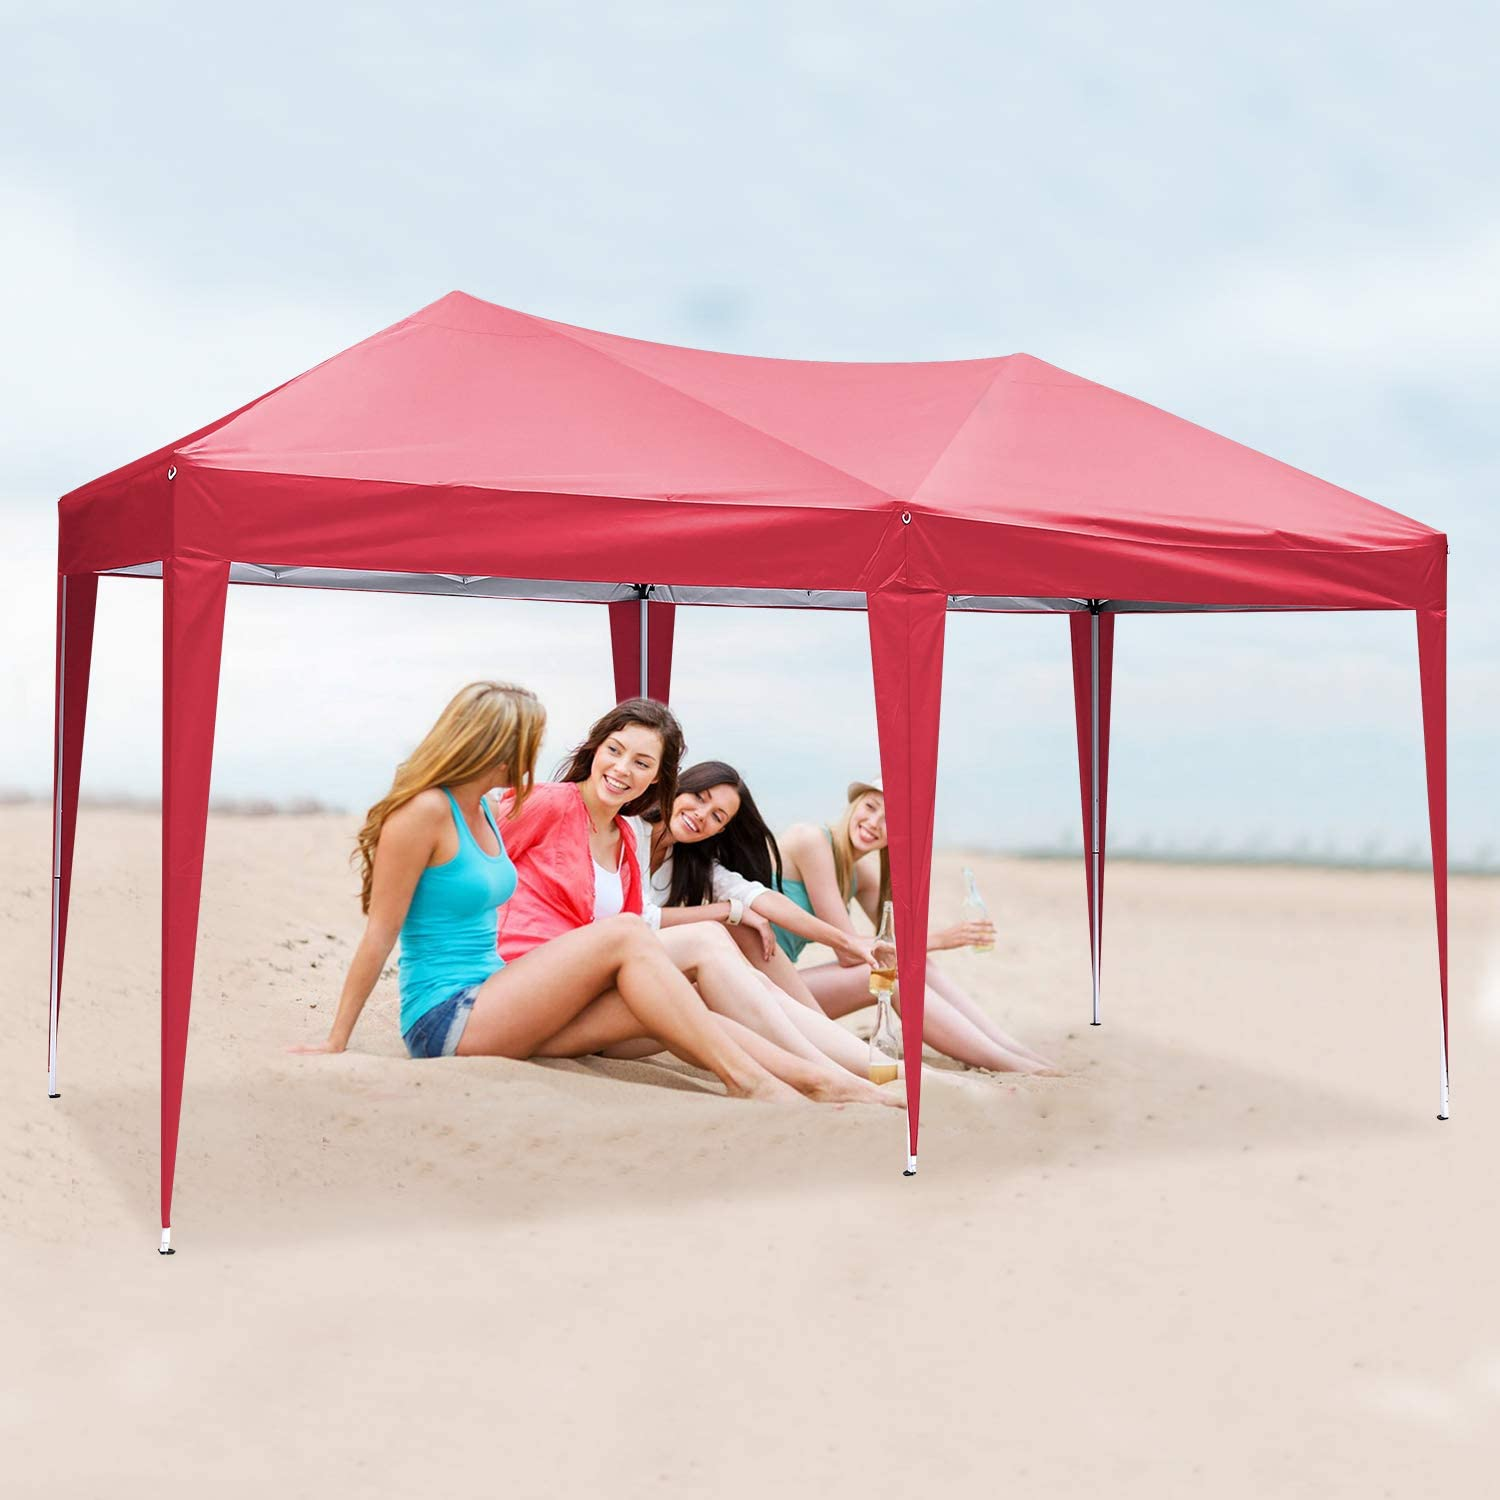 Beach Heavy Duty Gazebo Full Waterproof Sun-protective Marquee Tent with 4 Sidewalls and Carry Bag for Garden Instant Shelter YUEBO 3x3m Gazebo Flea Market